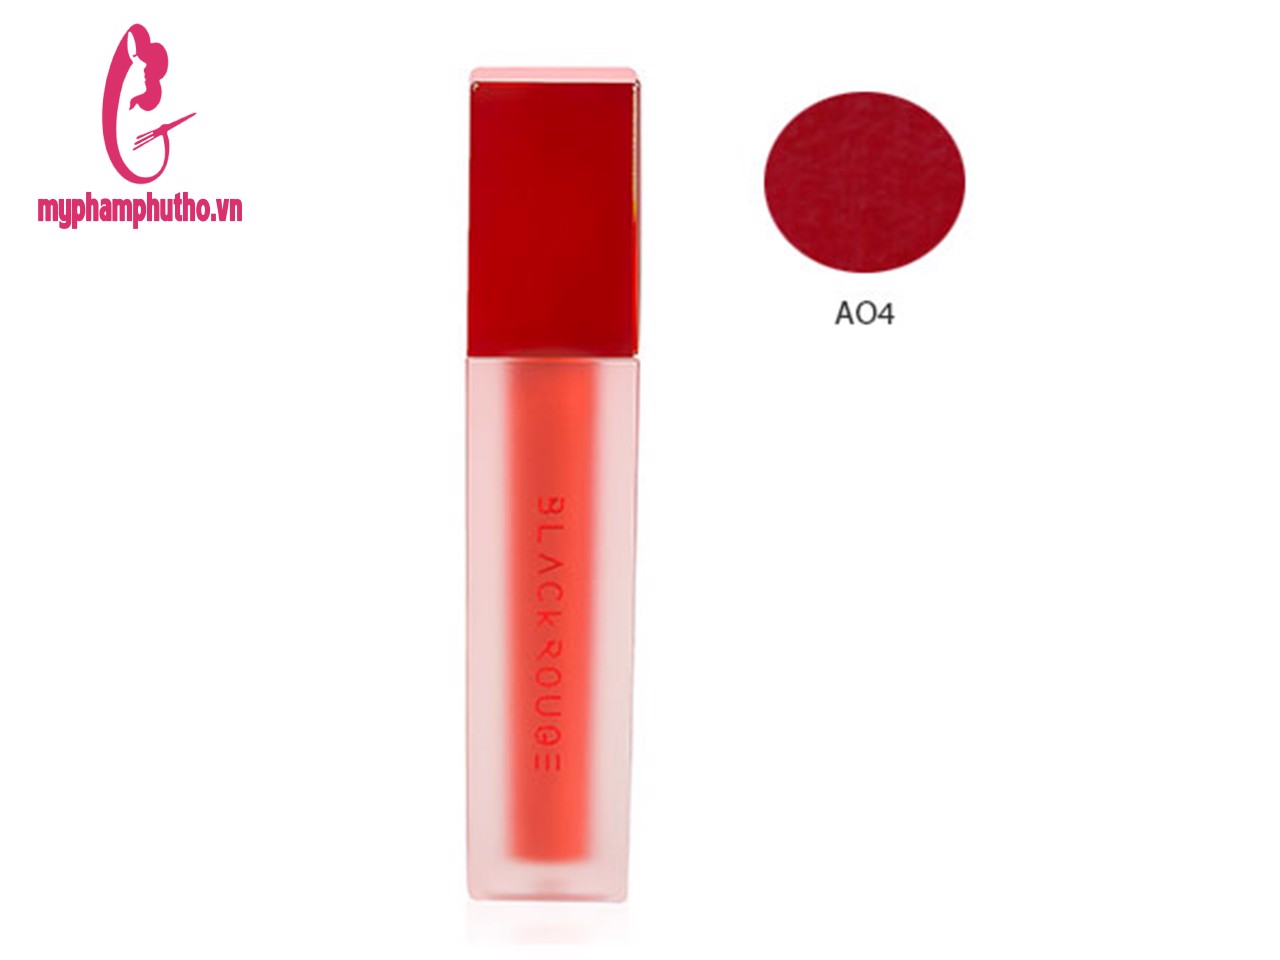 Son Kem Siêu Lì Black Rouge Air Fit Velvet Tint Màu A04